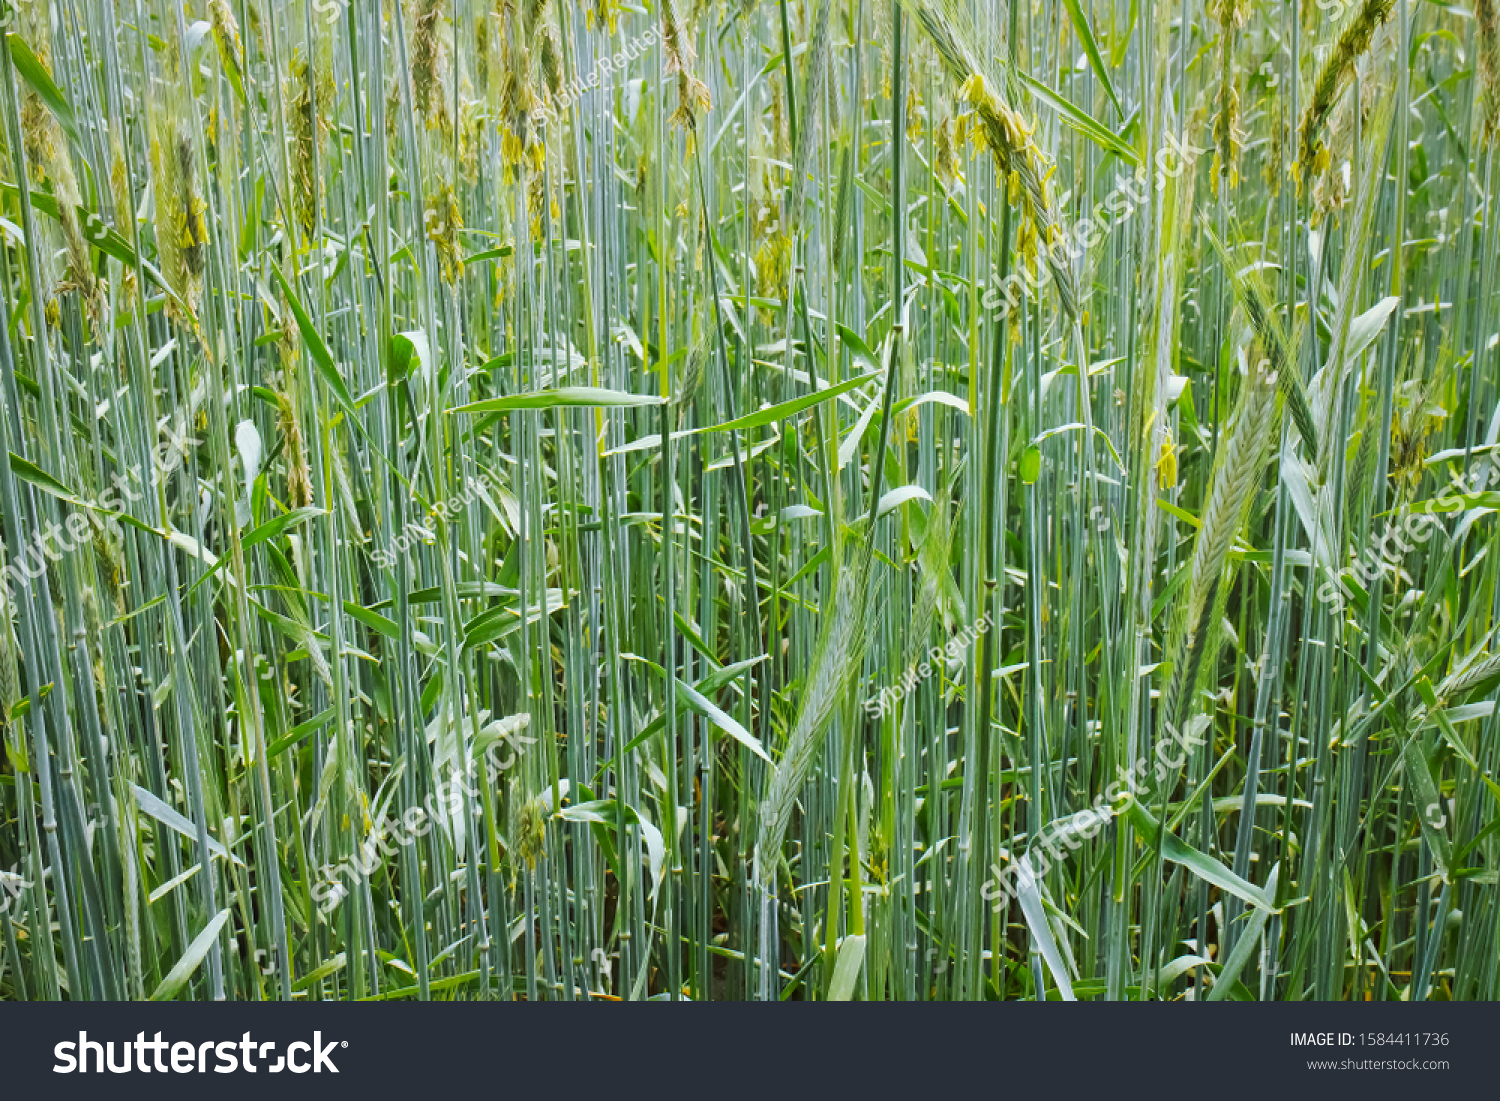 stock-photo-young-wheat-crops-on-an-agri